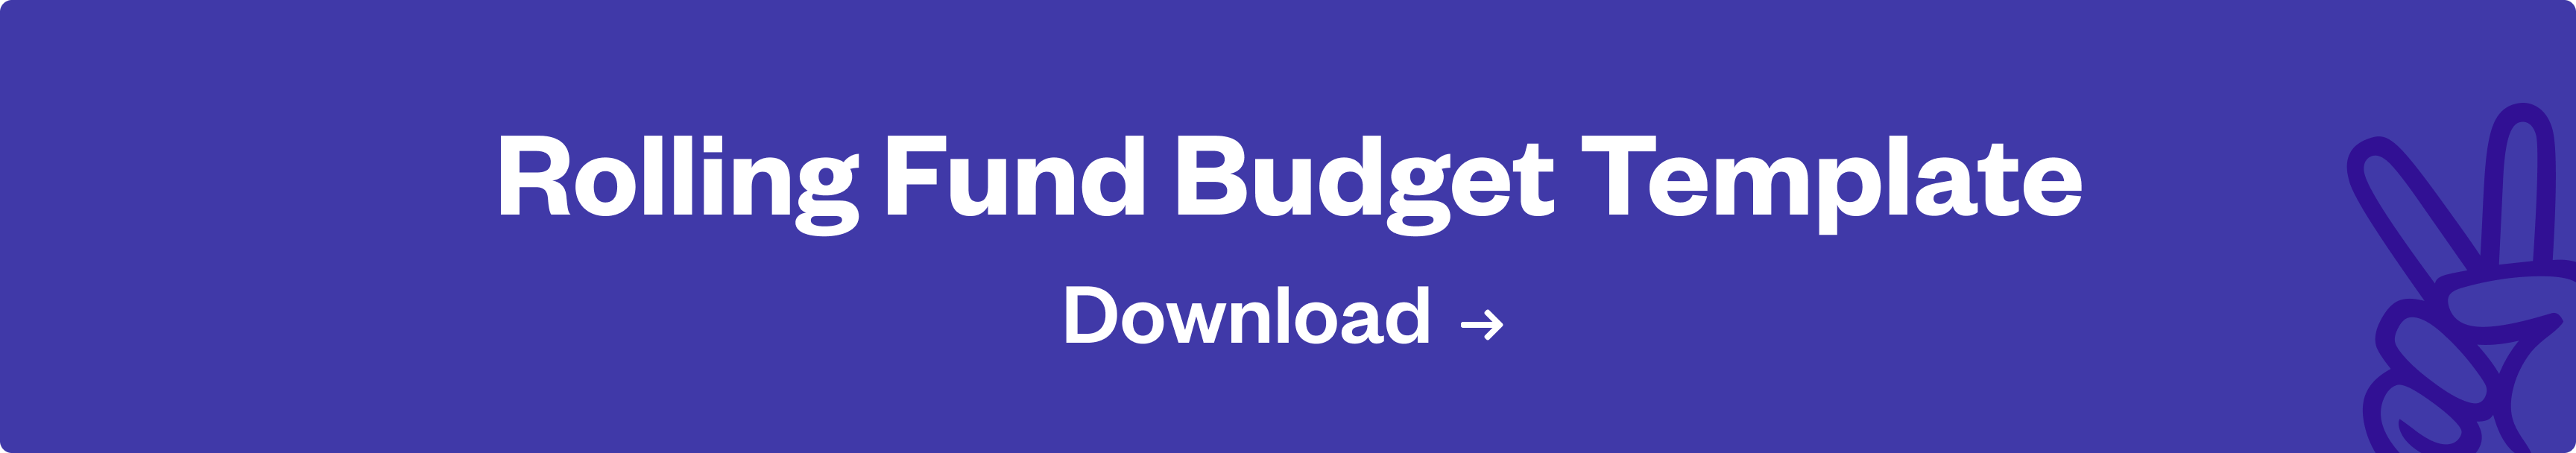 rolling fund budget template downloa